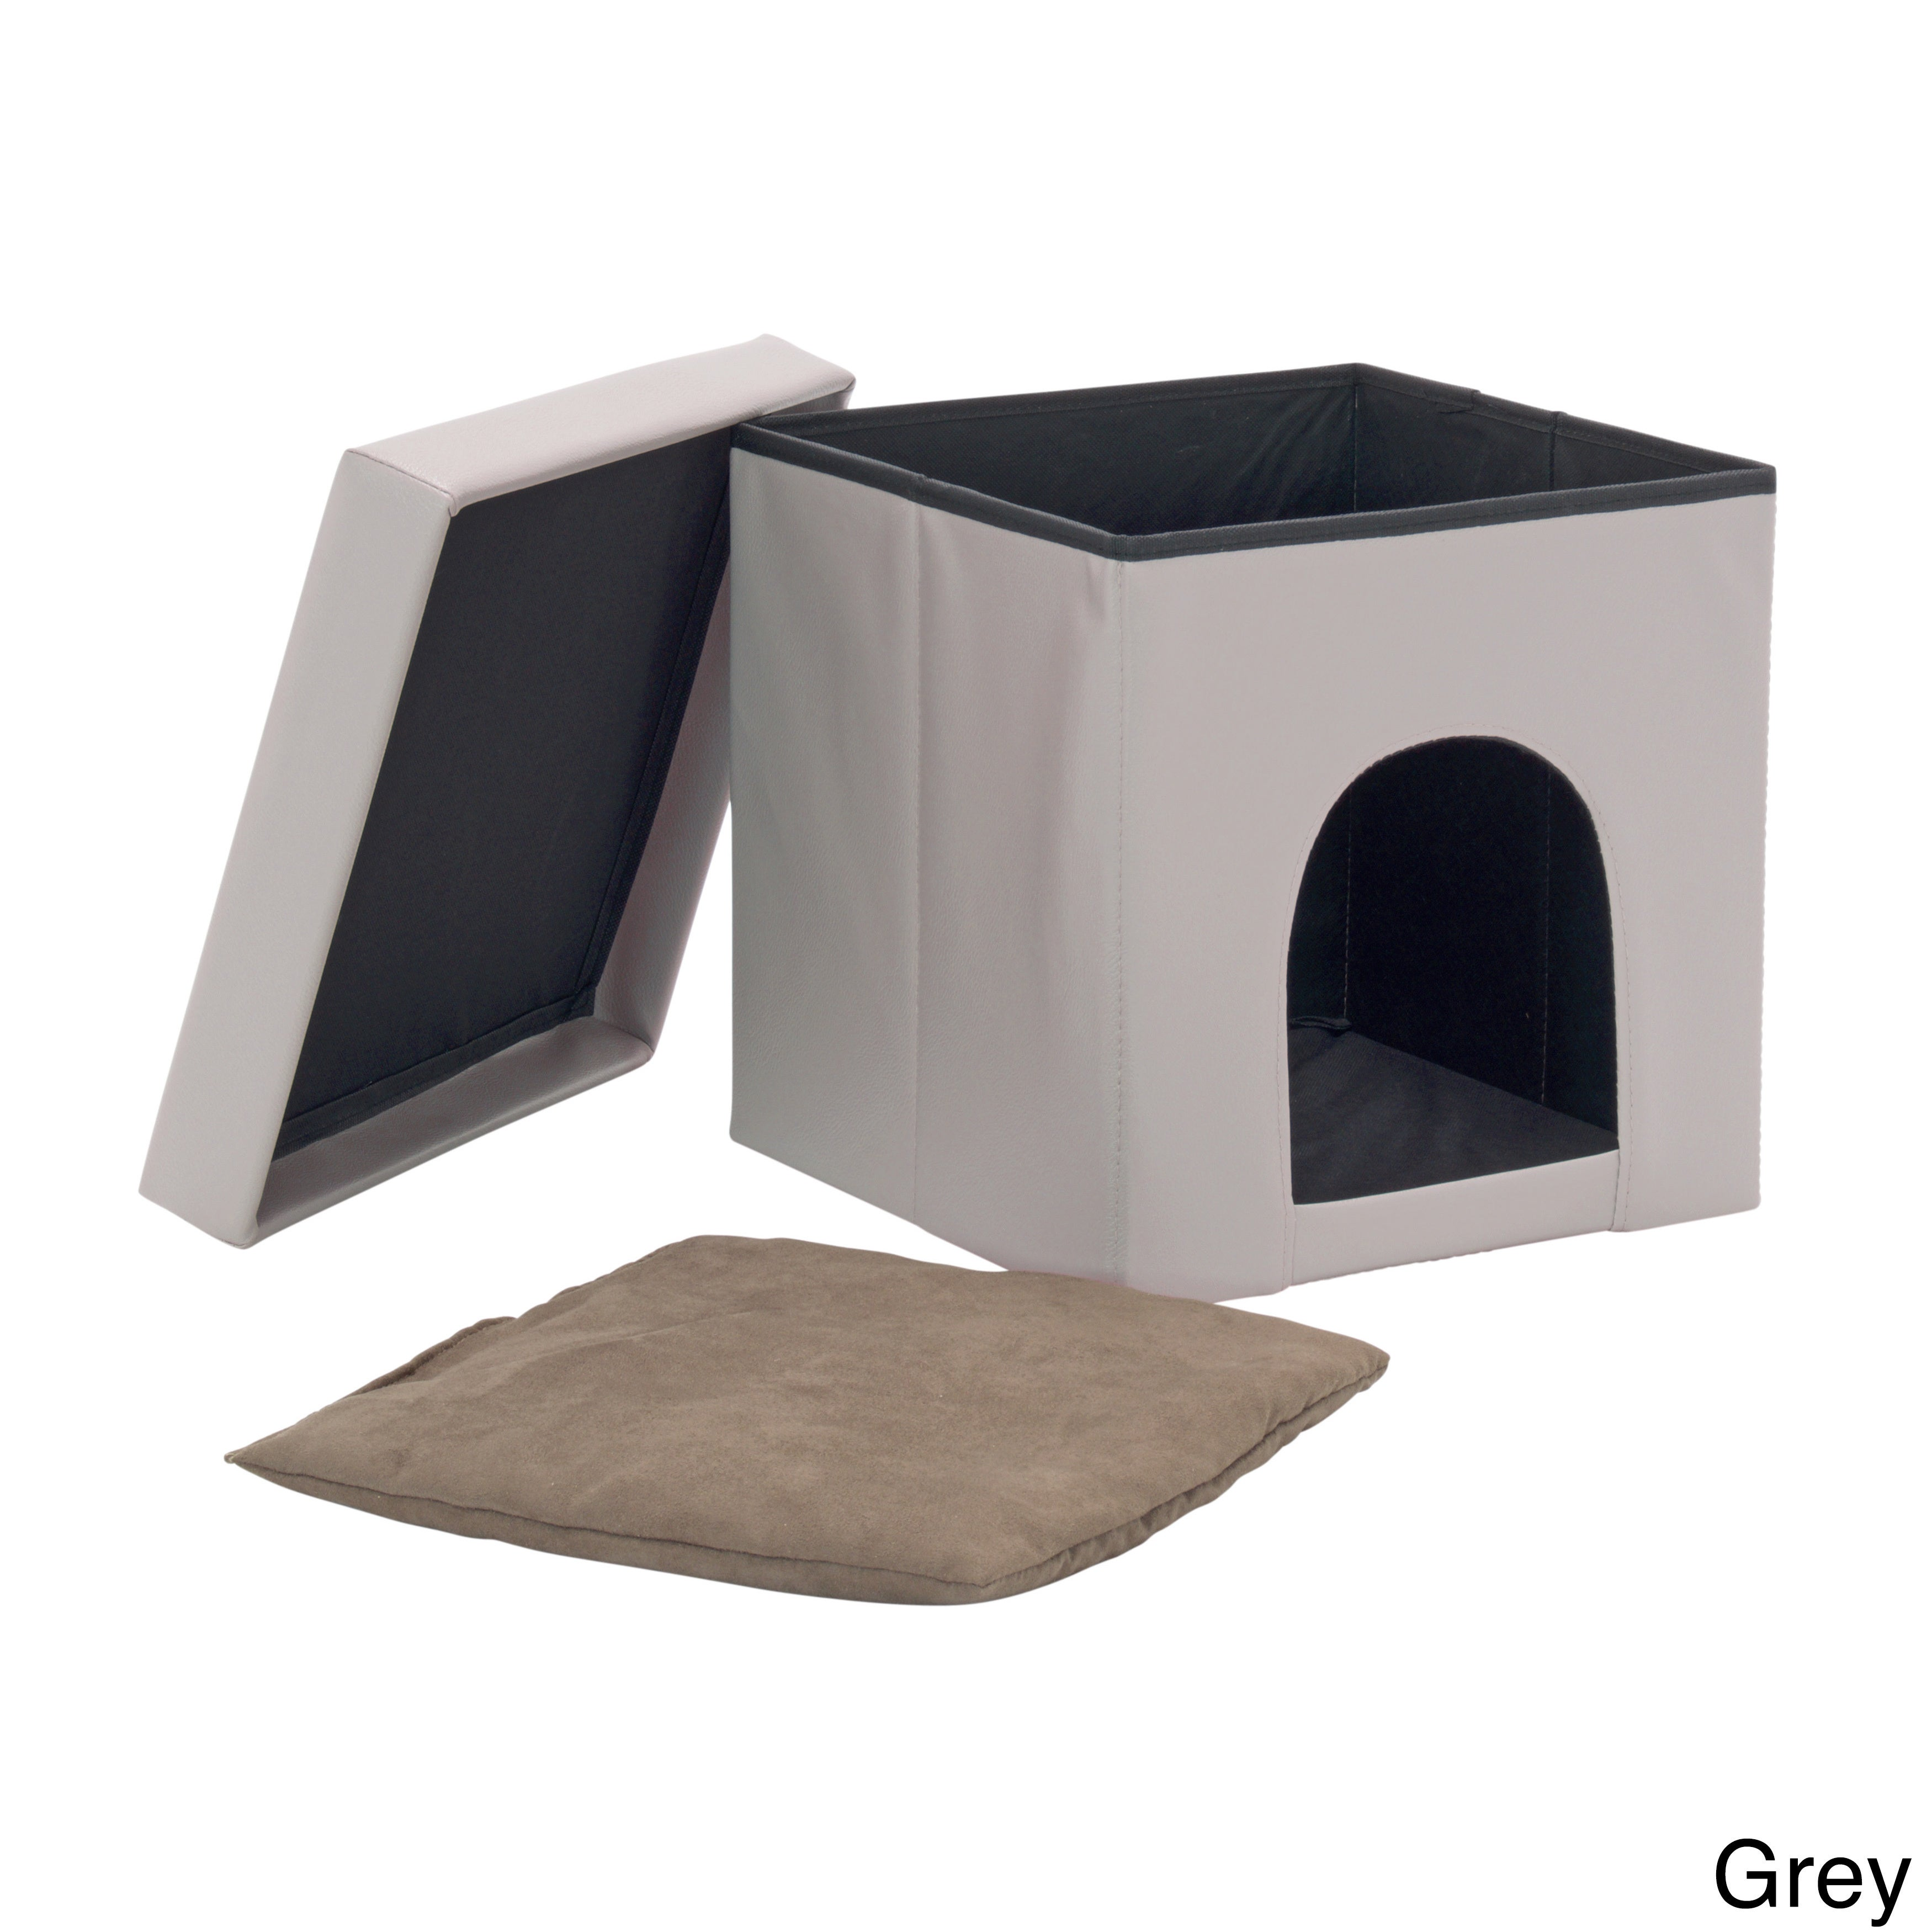 Studio Designs Collapsible Pet Bed and Ottoman (Grey)